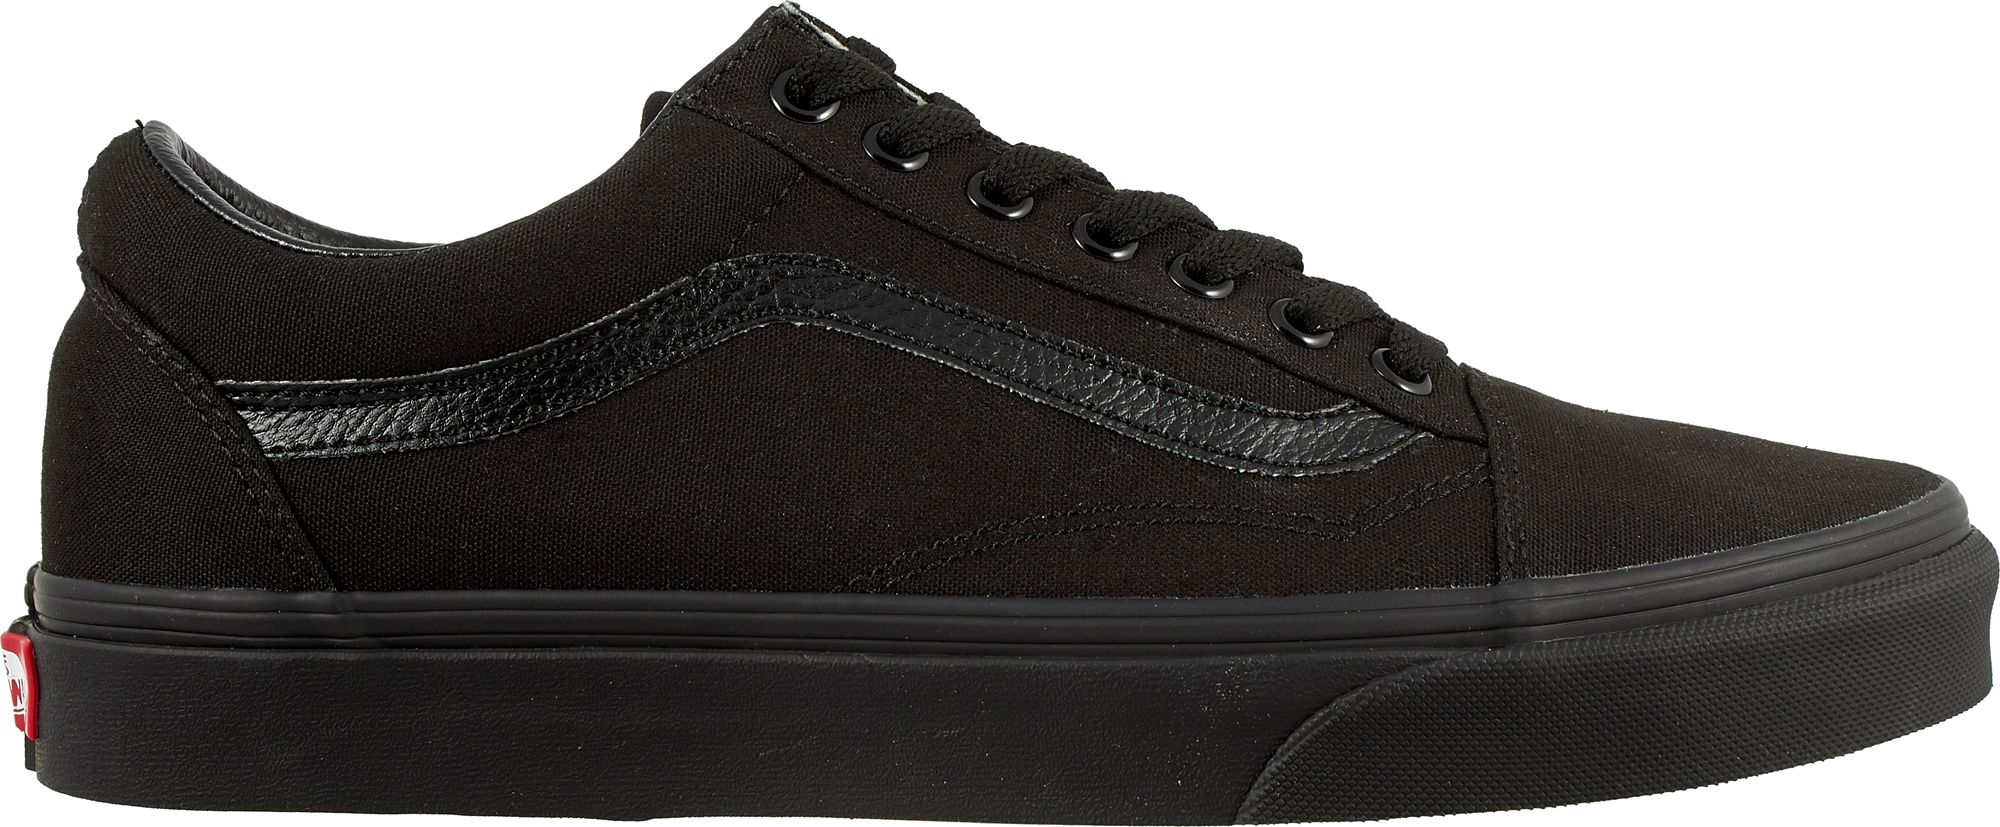 vans old skool shoes buy